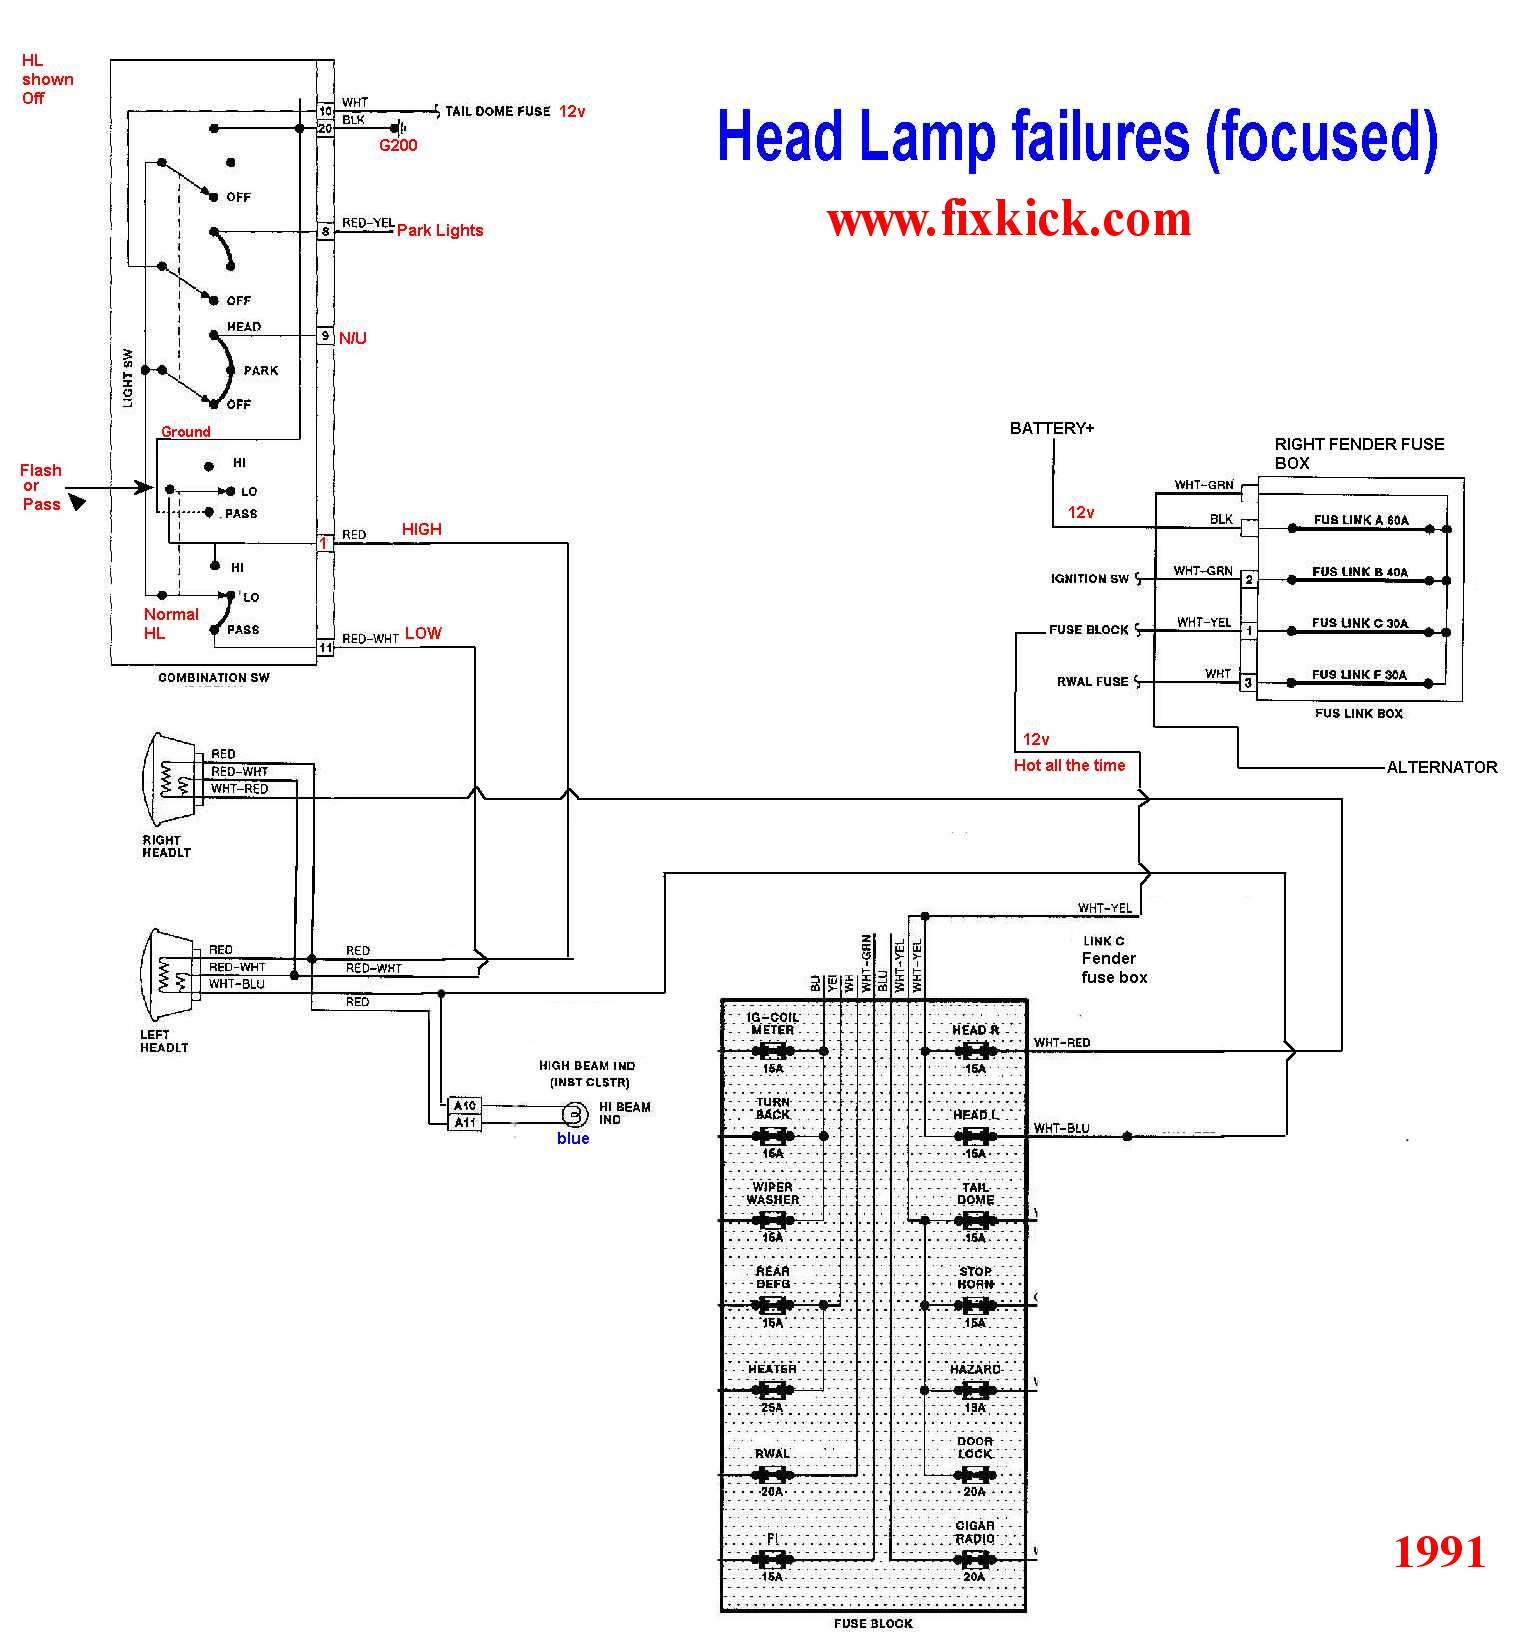 HL1A schematics to run engine Wiring-Diagram 1995 Geo Metro at bayanpartner.co